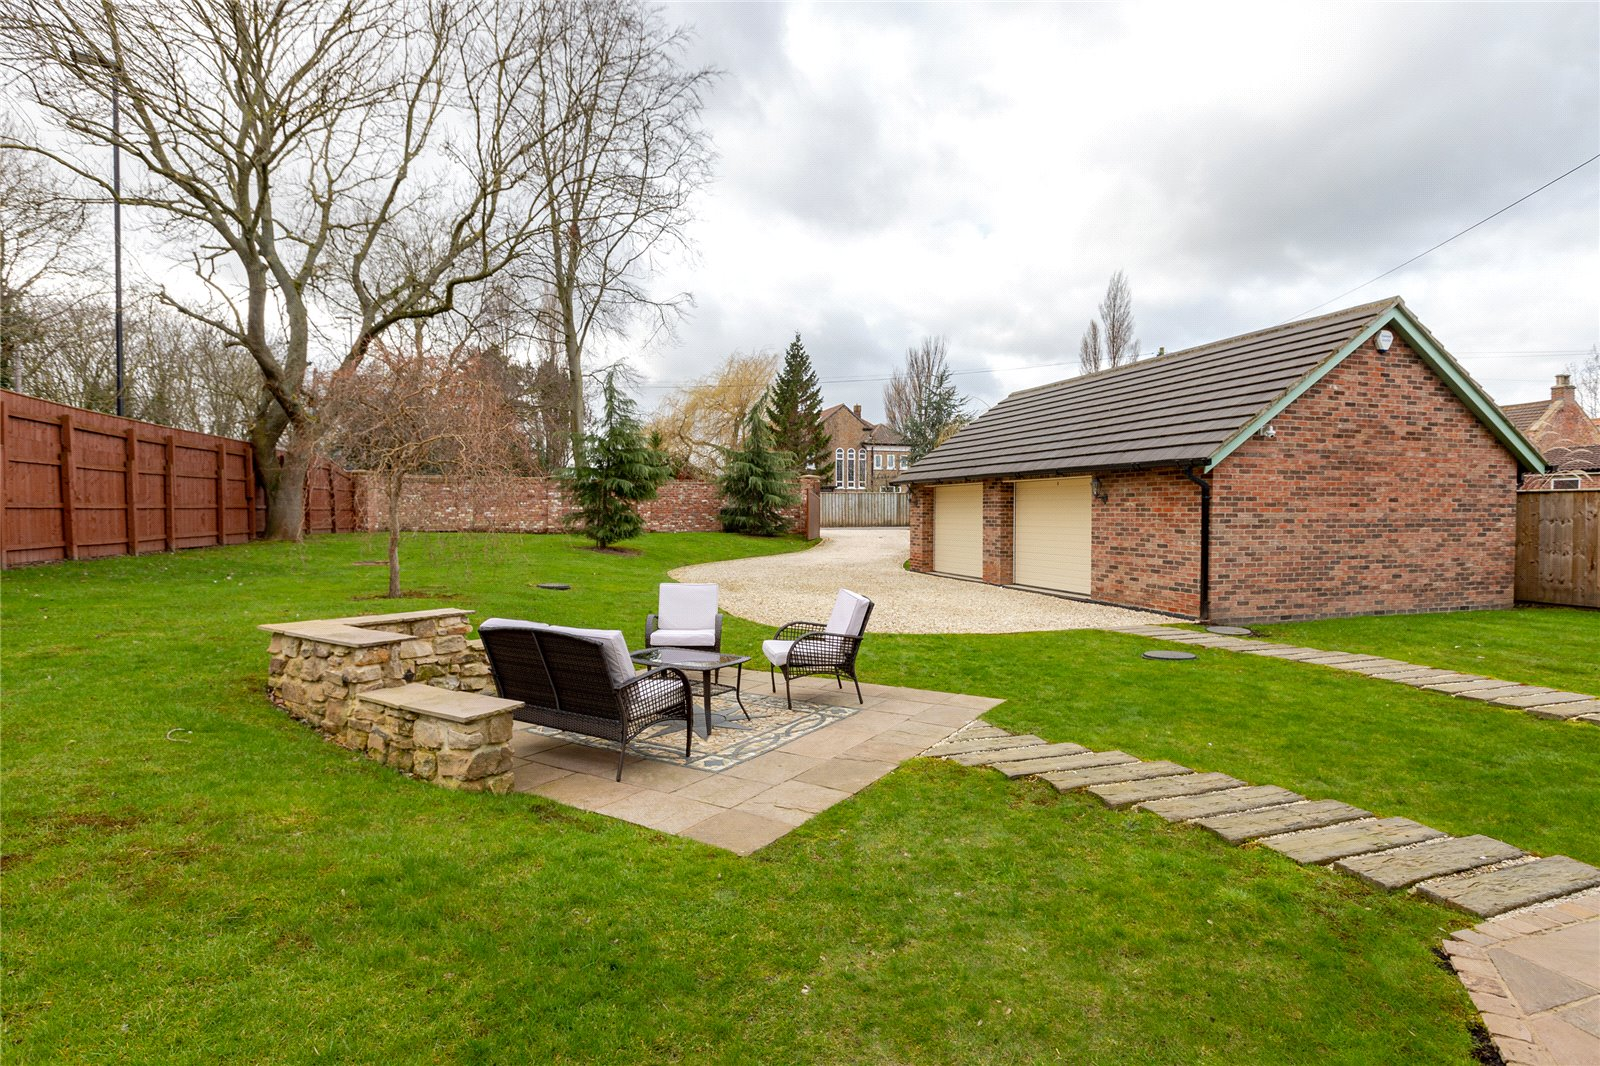 6 bed house for sale in Ladgate Lane, Middlesbrough  - Property Image 25